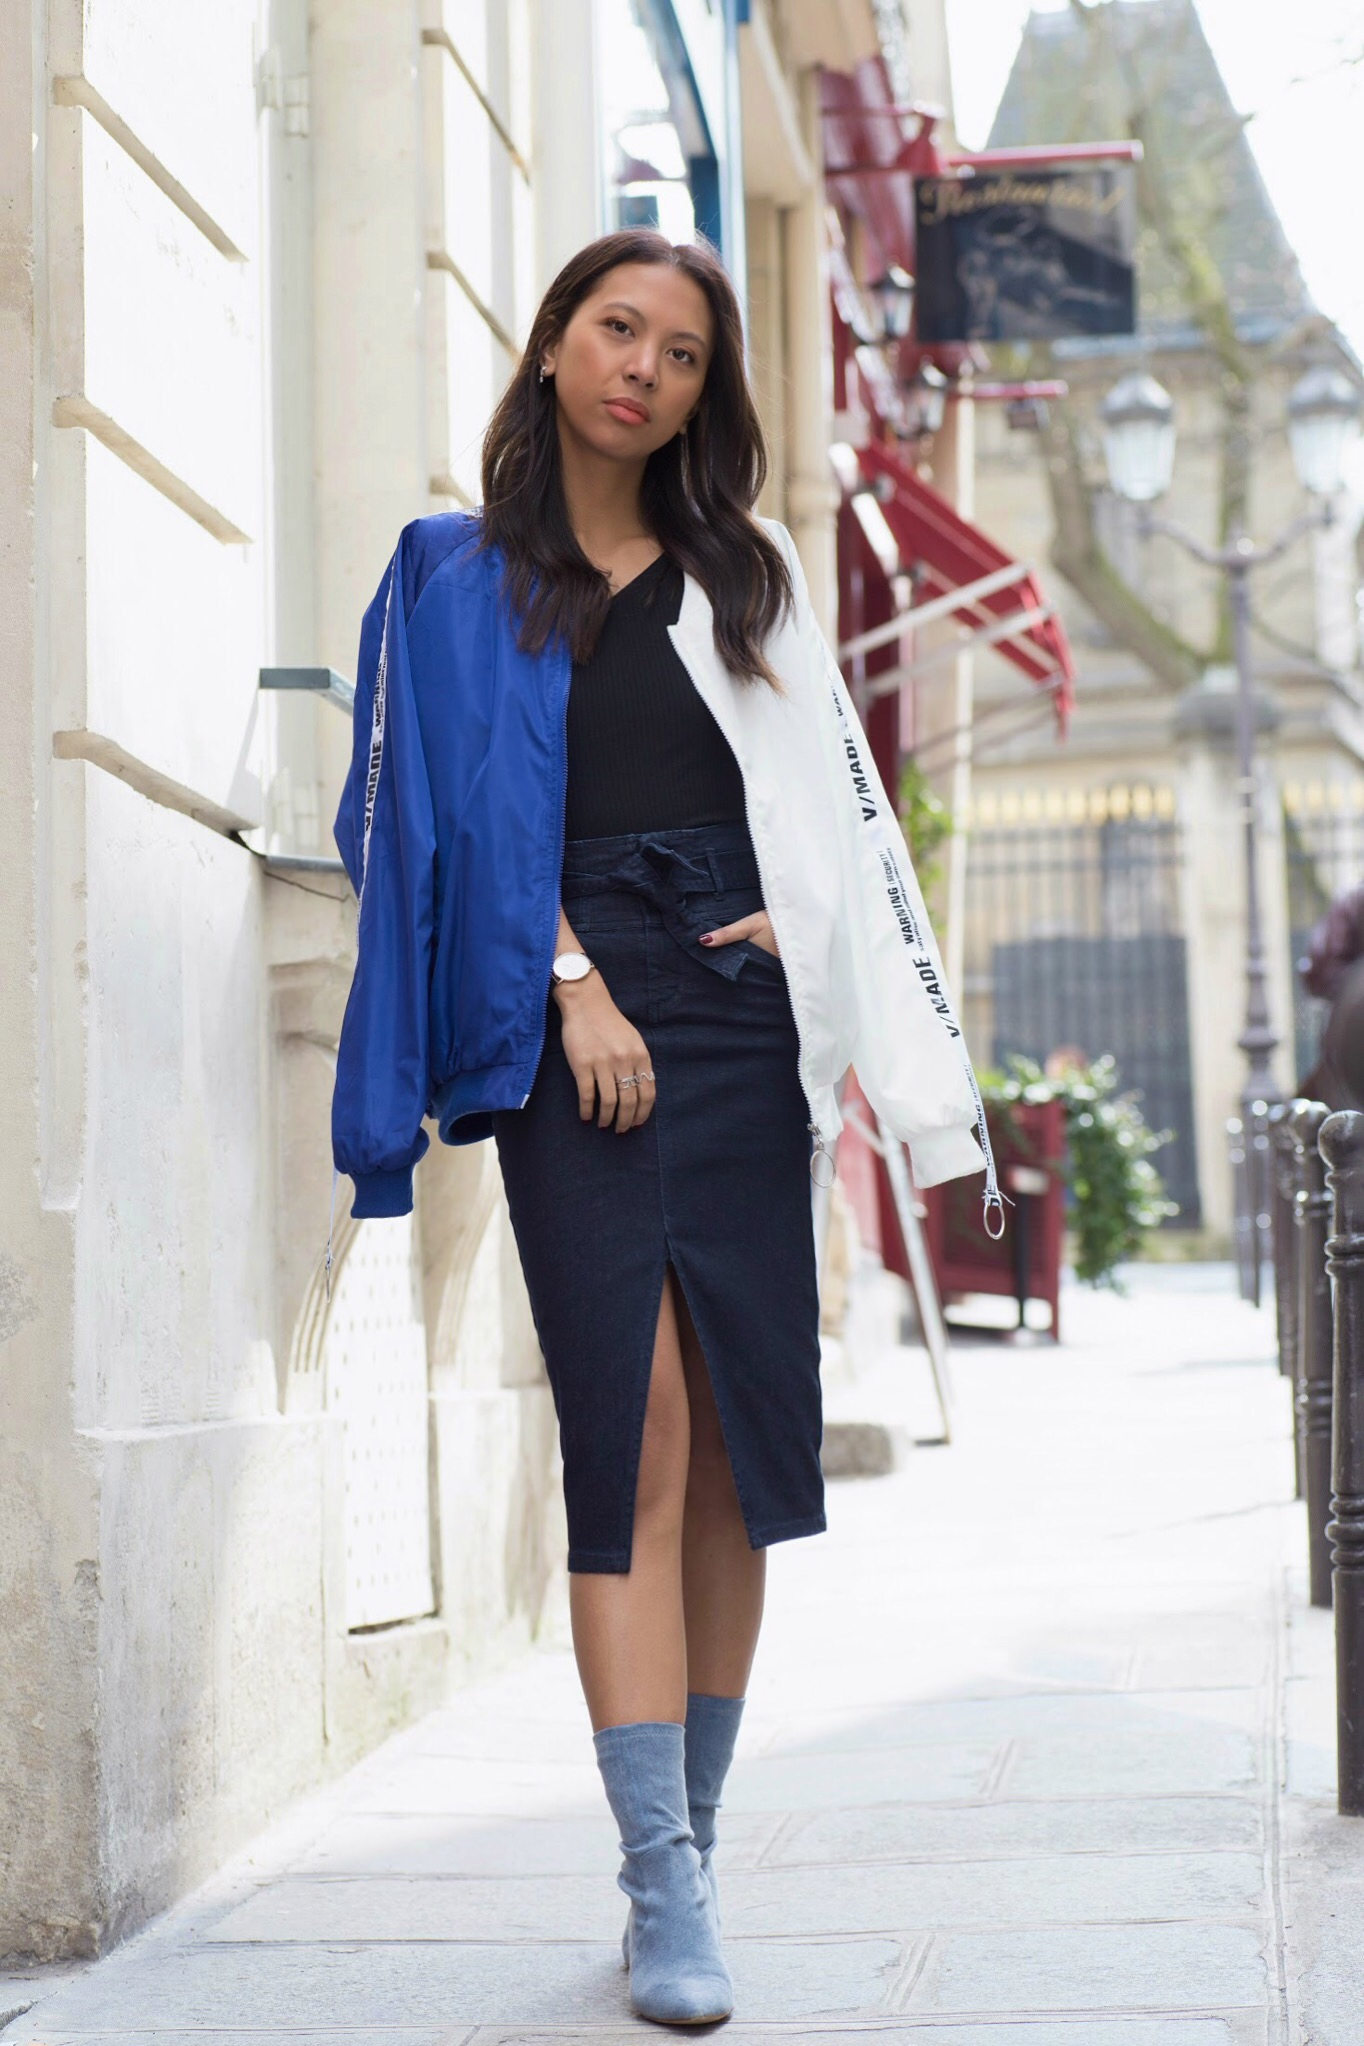 chic look with a bomber jacket - Lindsay blogueuse Paris